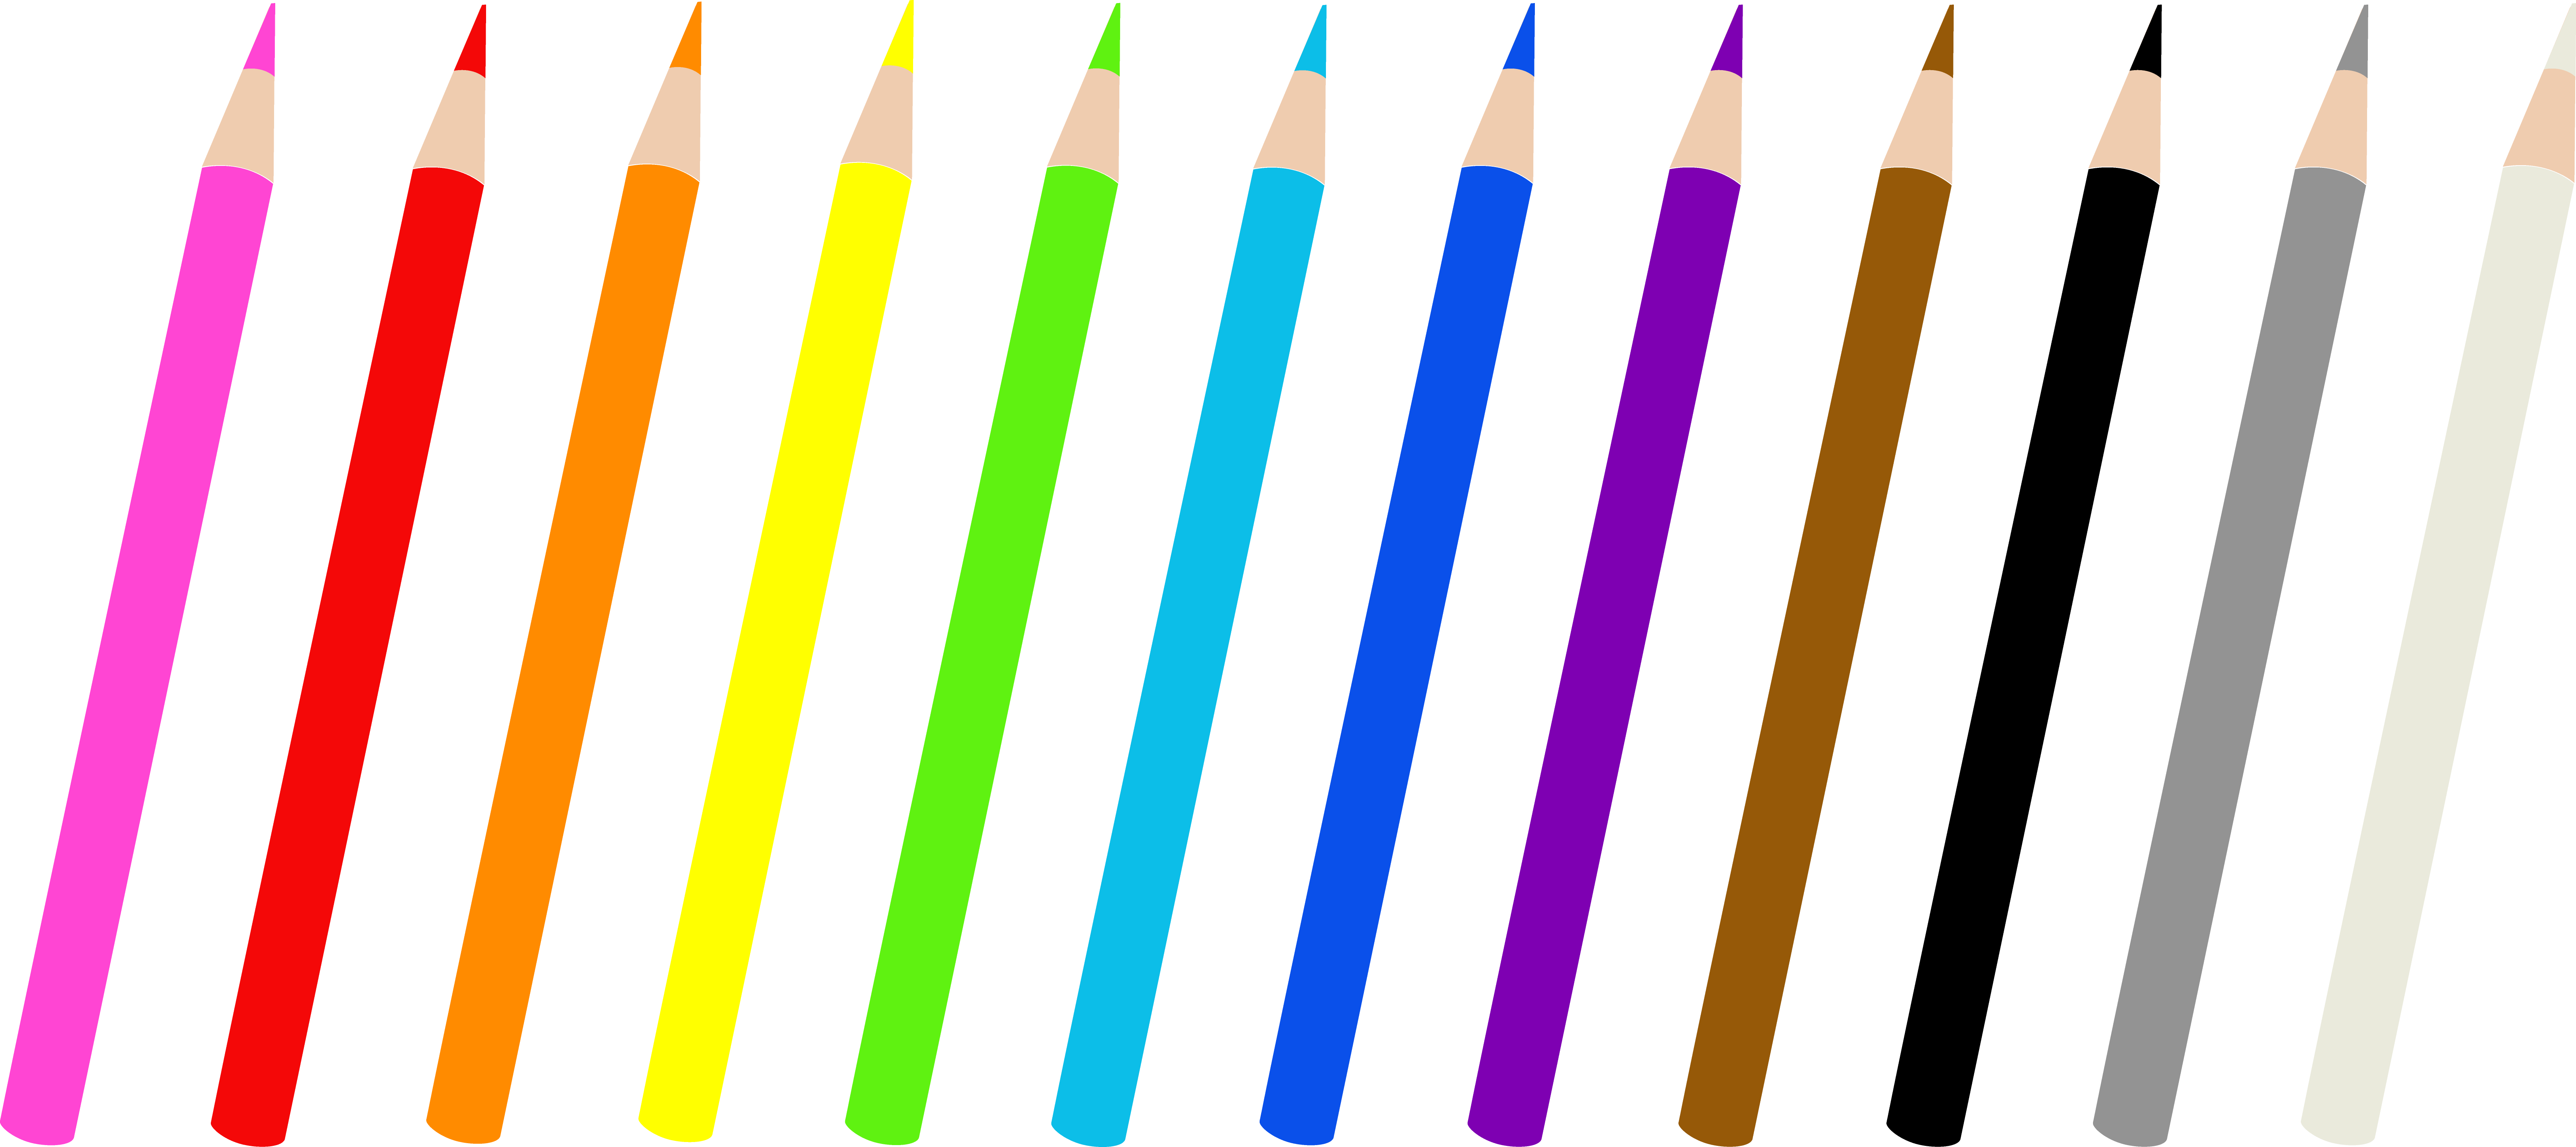 png royalty free stock Art yahoo image search. Drawing examples color pencil.